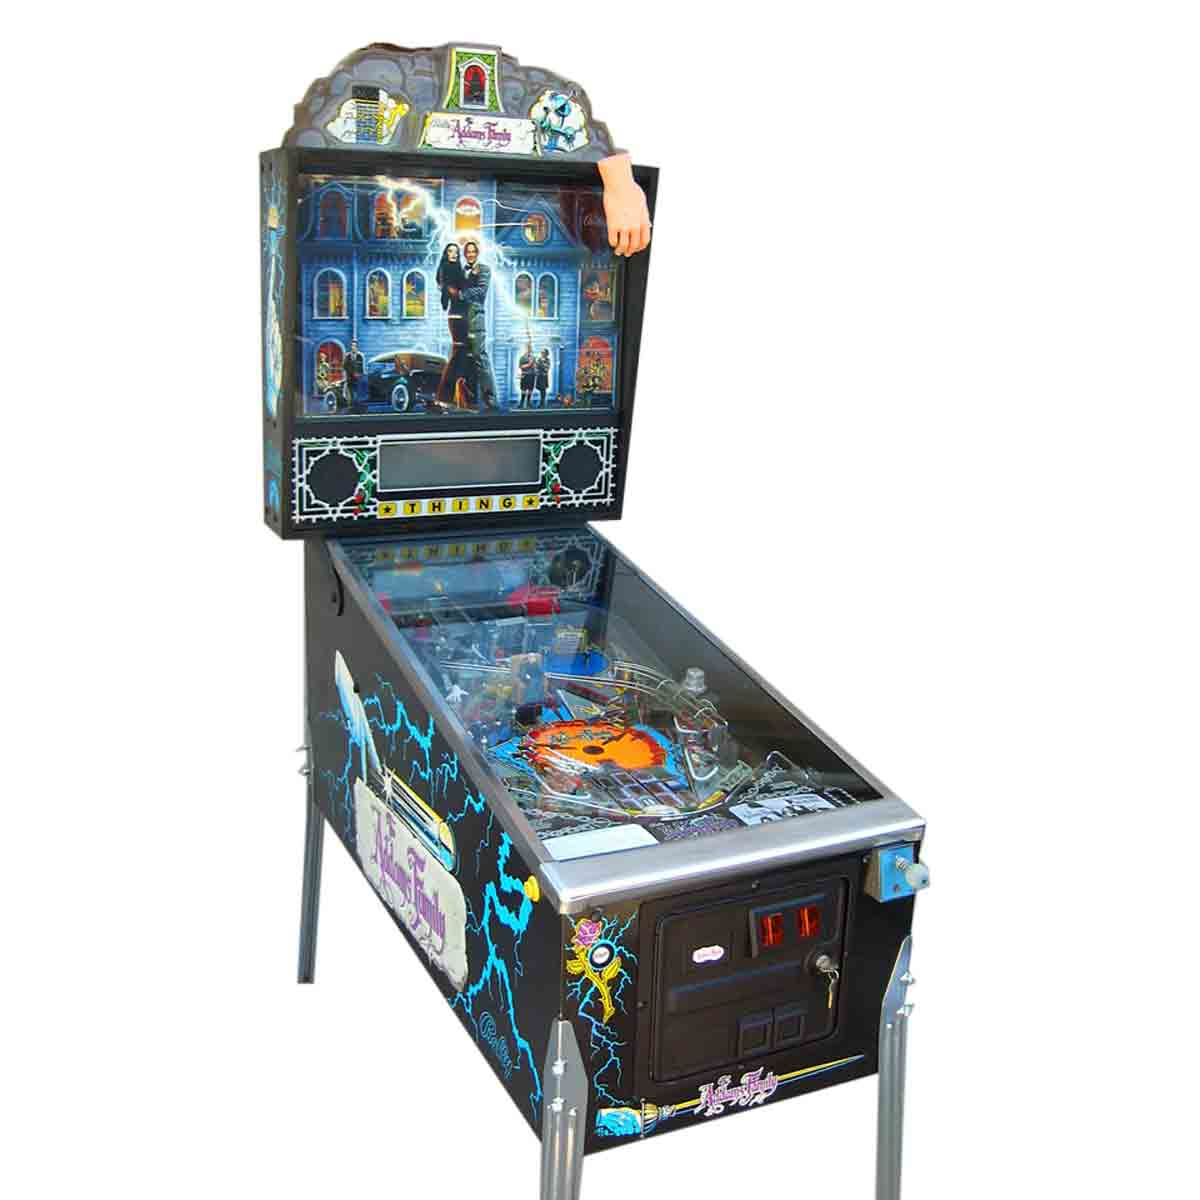 buy addam s family pinball machine by bally online at 9999